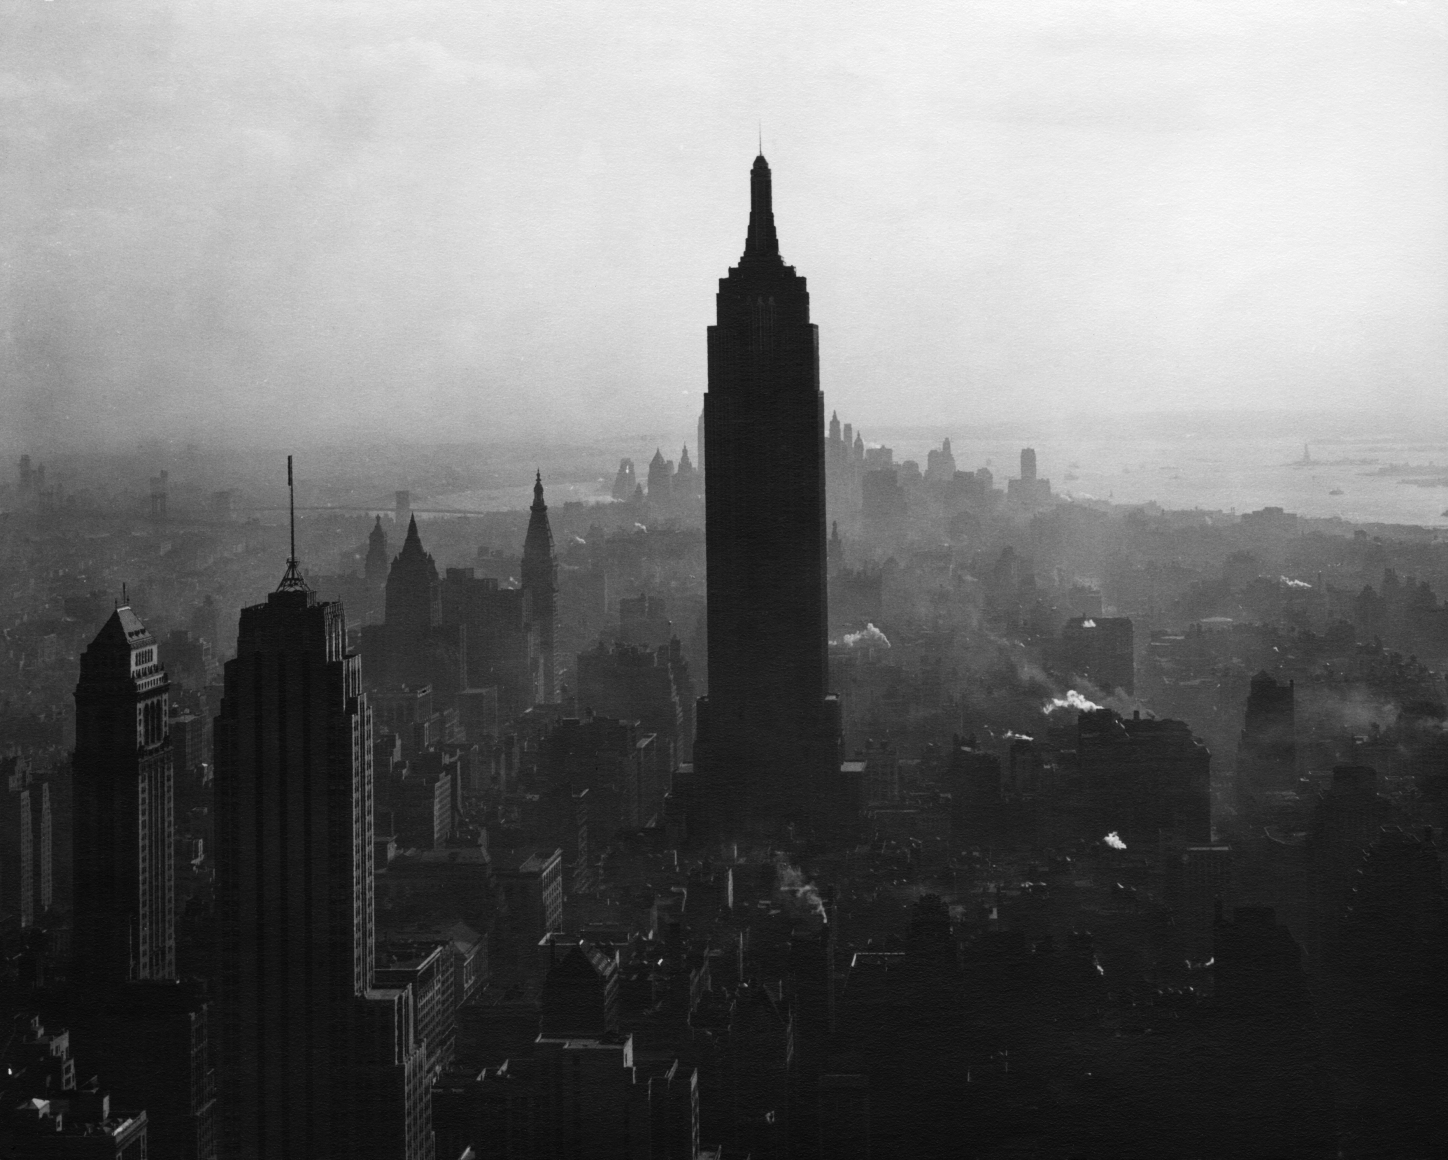 38. Todd Webb, View South from the top of the RCA Building showing the Empire State Building, 1947. Elevated view of the silhouetted Empire State and surrounding buildings amidst light fog.